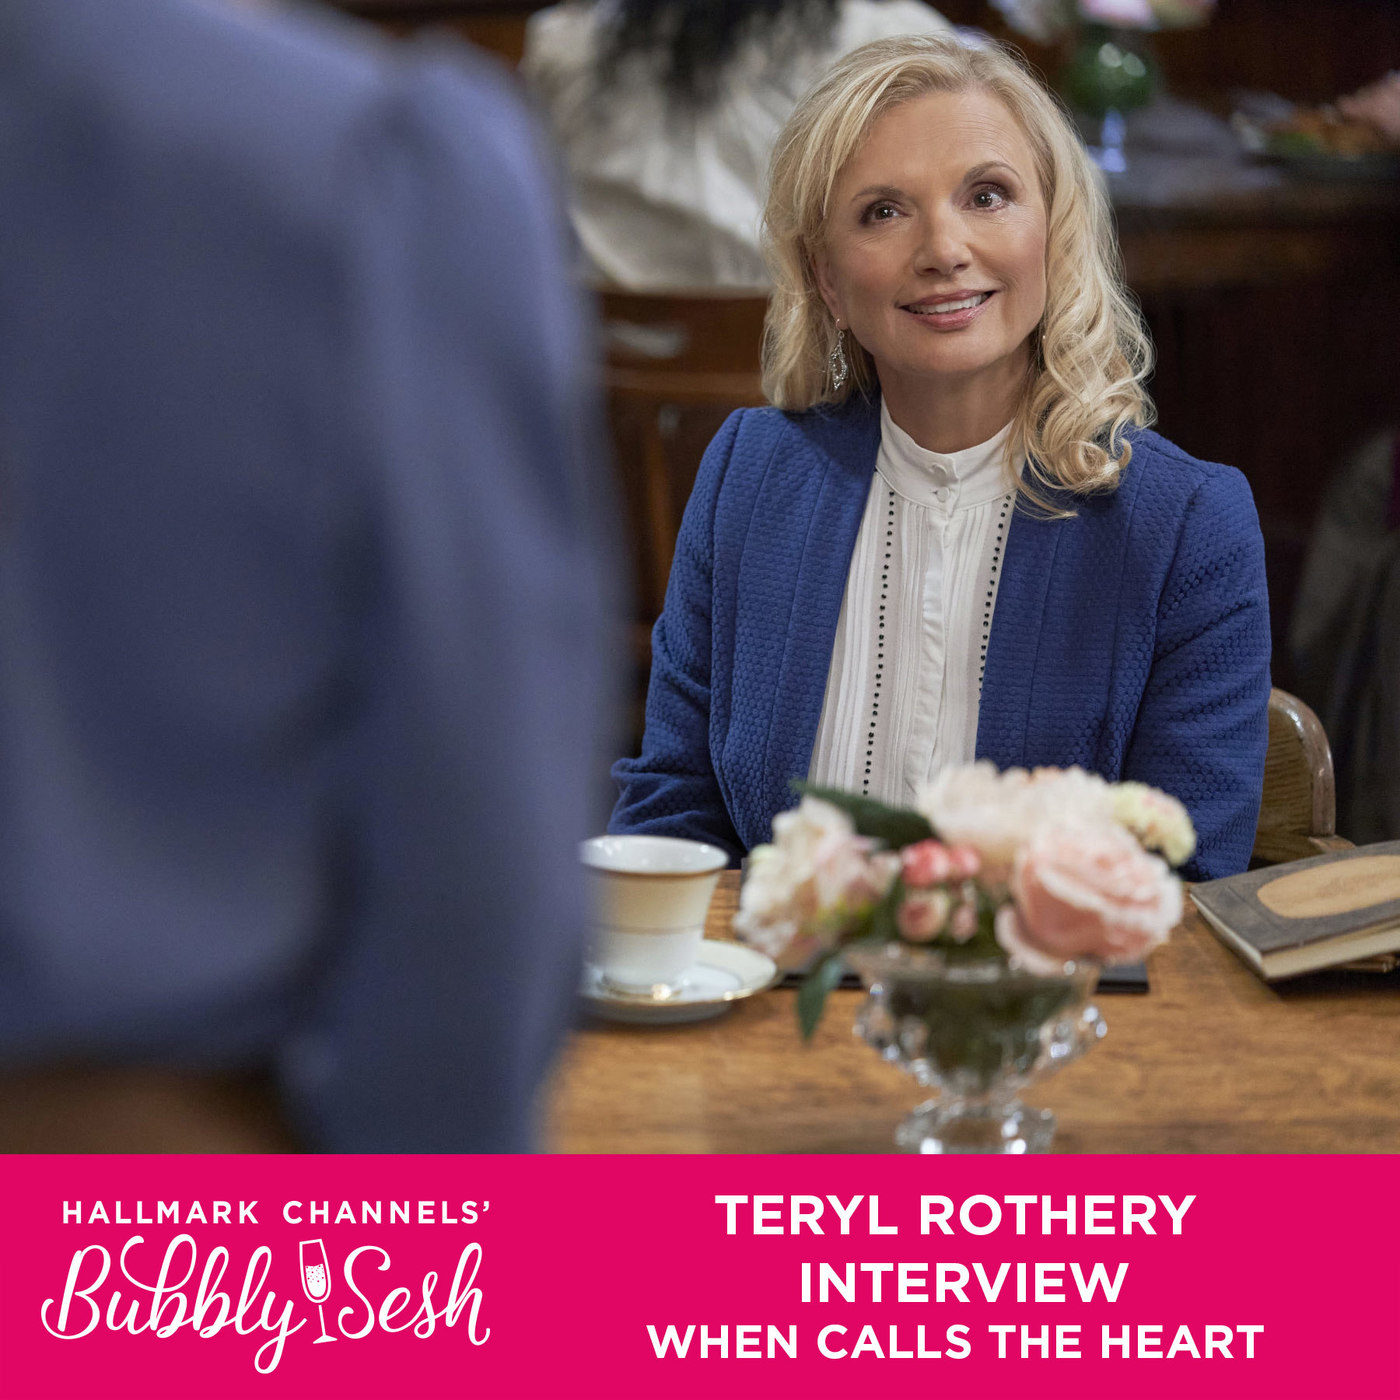 Teryl Rothery Interview